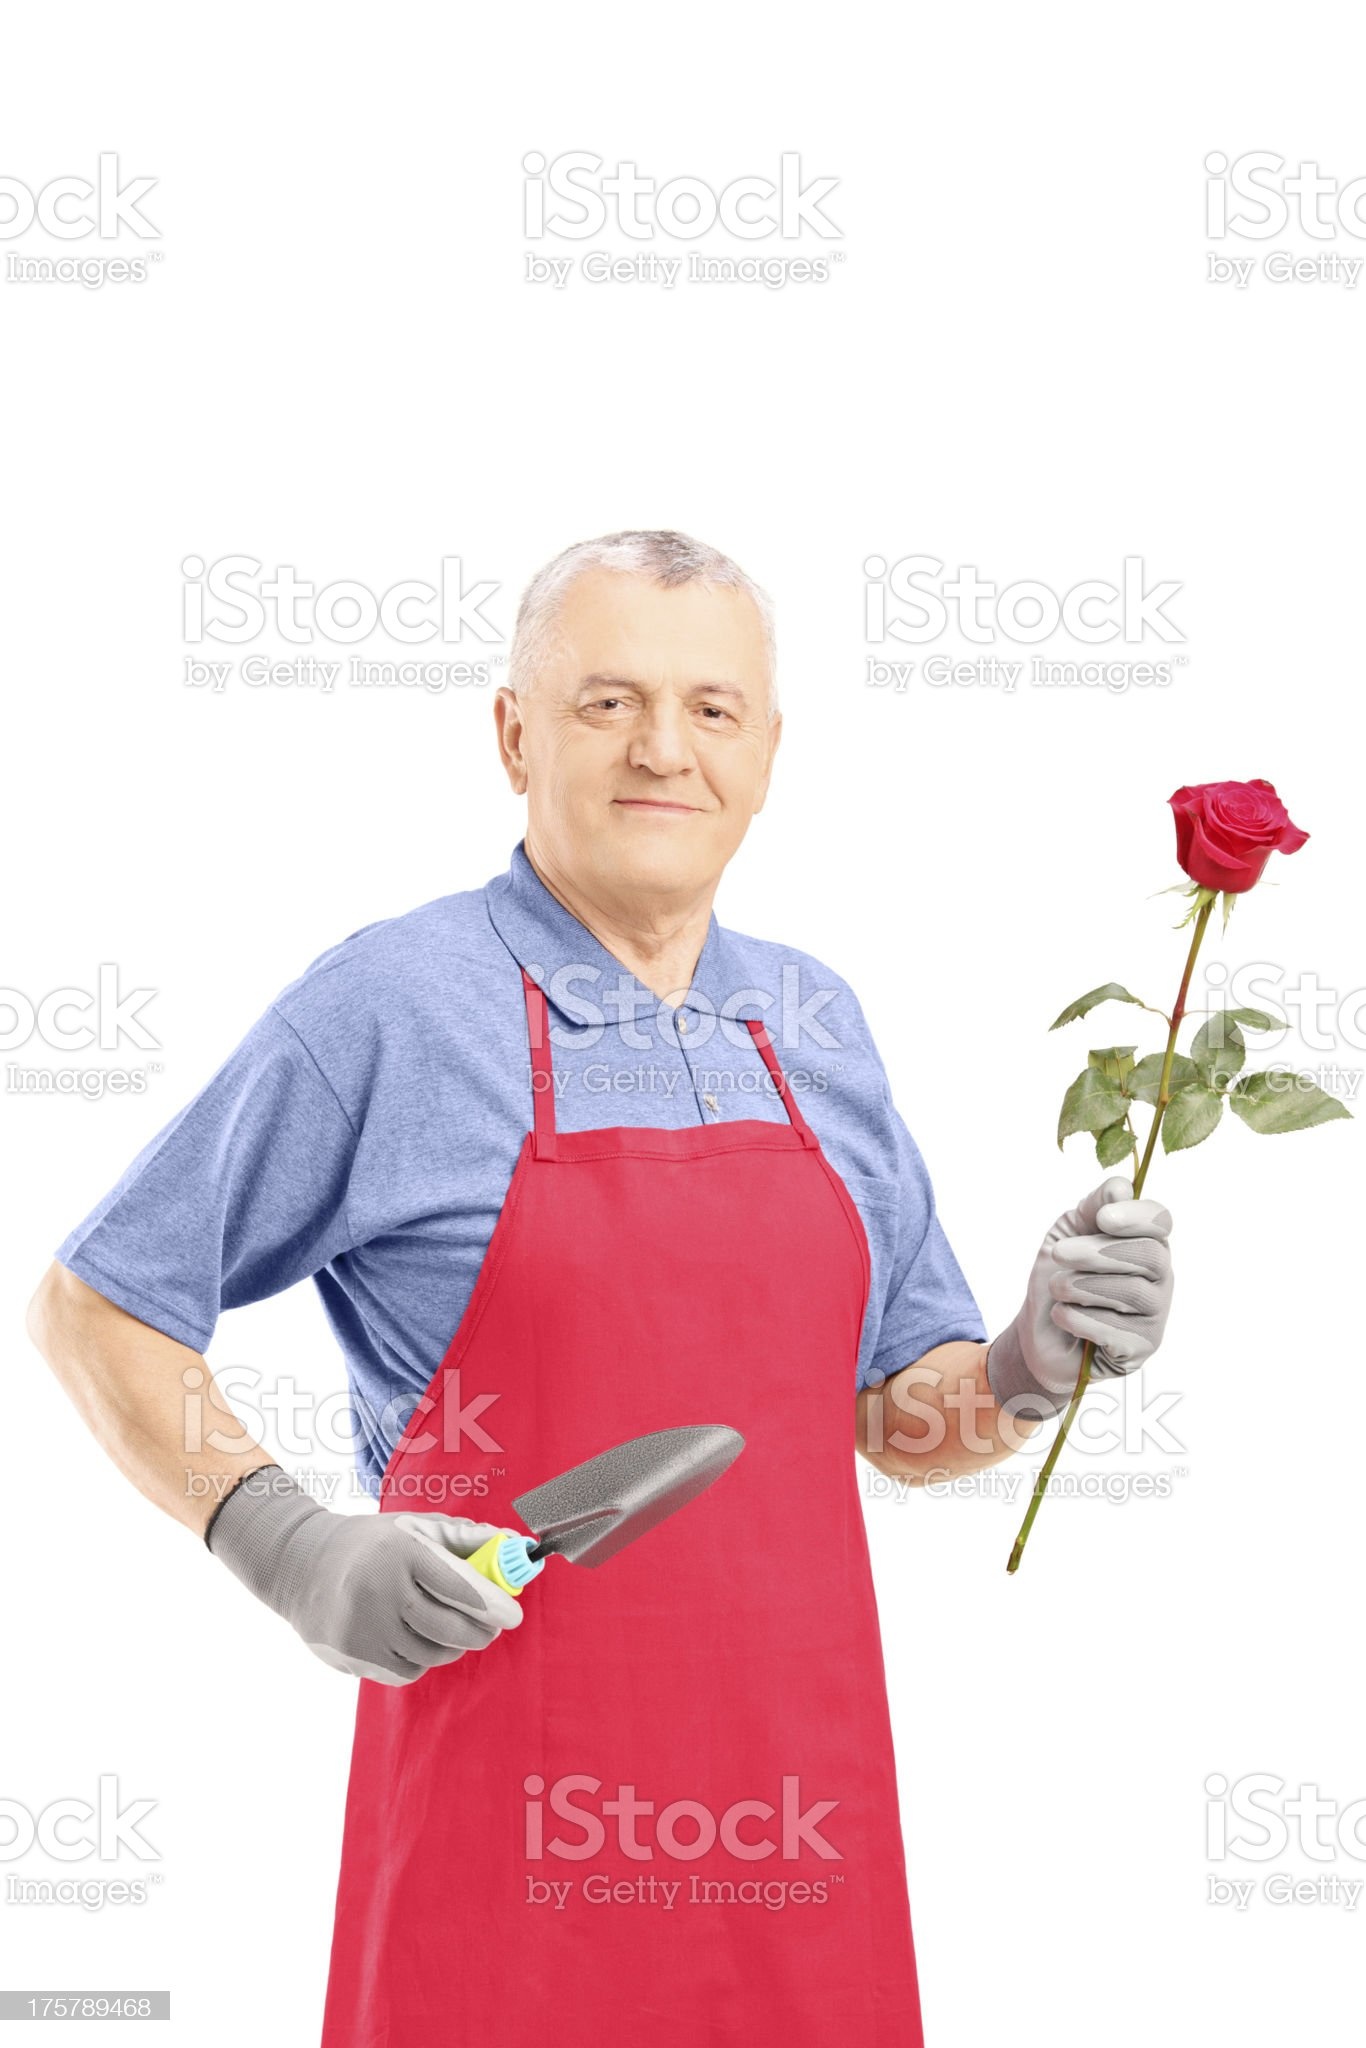 Male gardener holding a flower and gardening equipment royalty-free stock photo